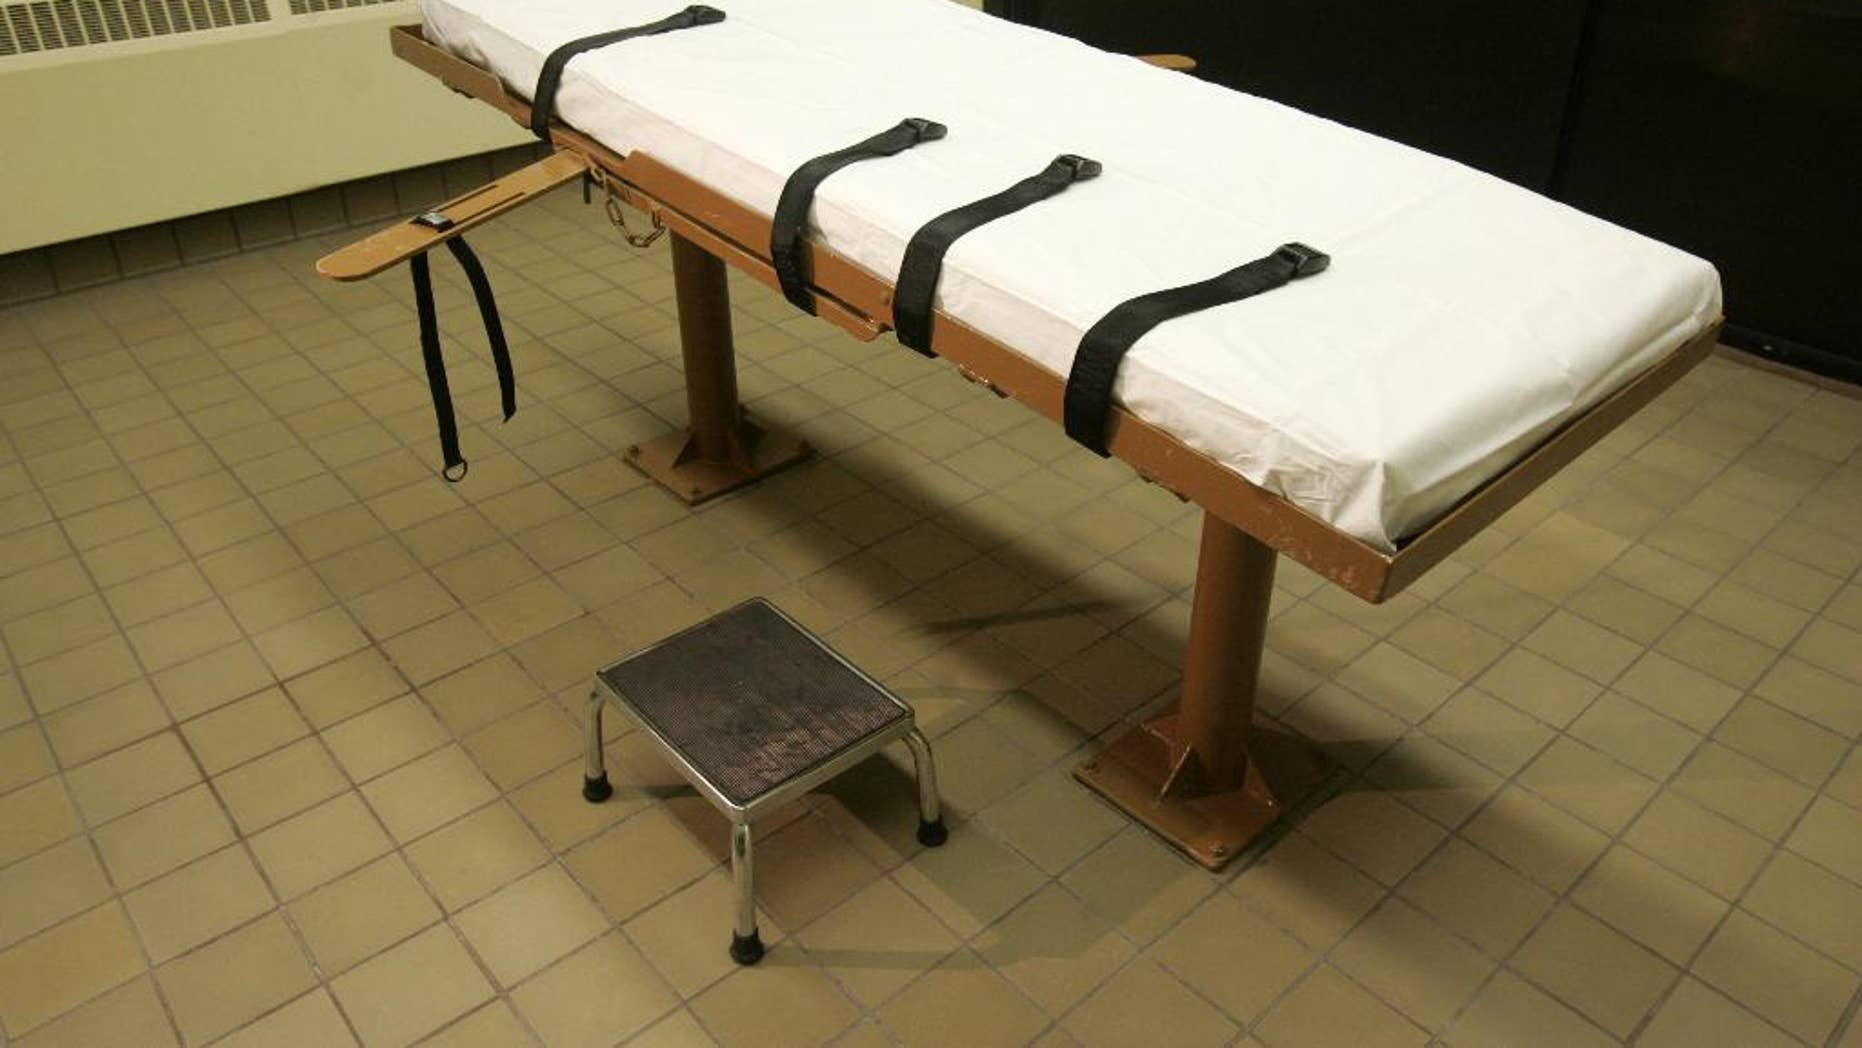 FILE -  This November 2005, file photo, shows the death chamber at the Southern Ohio Correctional Facility in Lucasville, Ohio. The Ohio Supreme Court is weighing arguments by death row inmate Romell Broom that allowing the state prisons agency to try again to execute him amounts to cruel and unusual punishment and double jeopardy. The court planned to hear arguments Tuesday, June 9, 2015. (AP Photo/Kiichiro Sato, File)